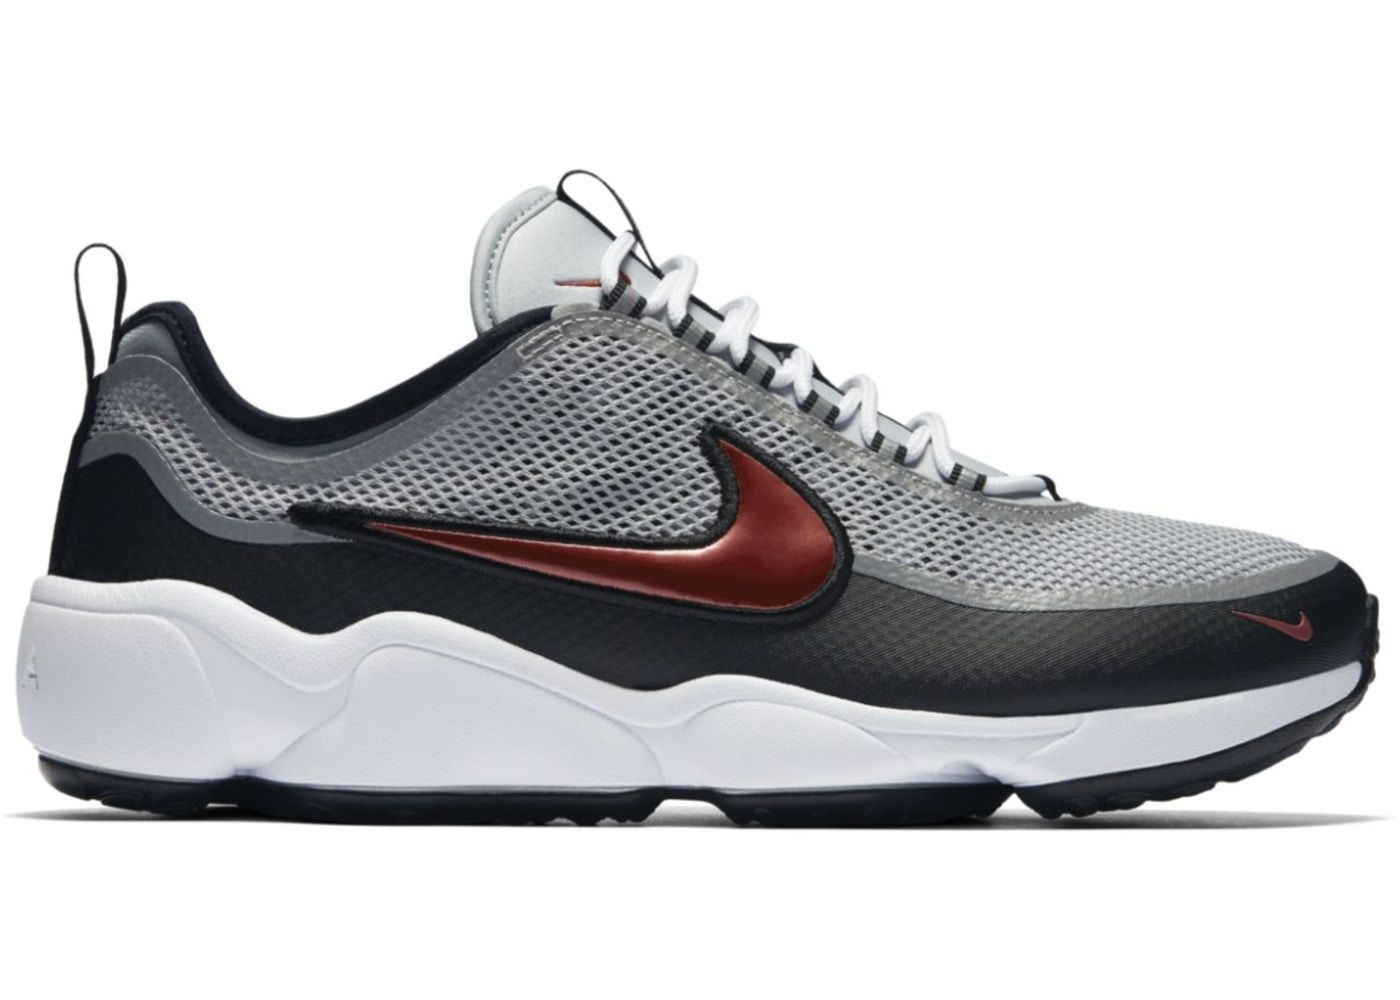 c9247f75f8125 Nike Air Zoom Spiridon Ultra - metallic silver desert red - size 13